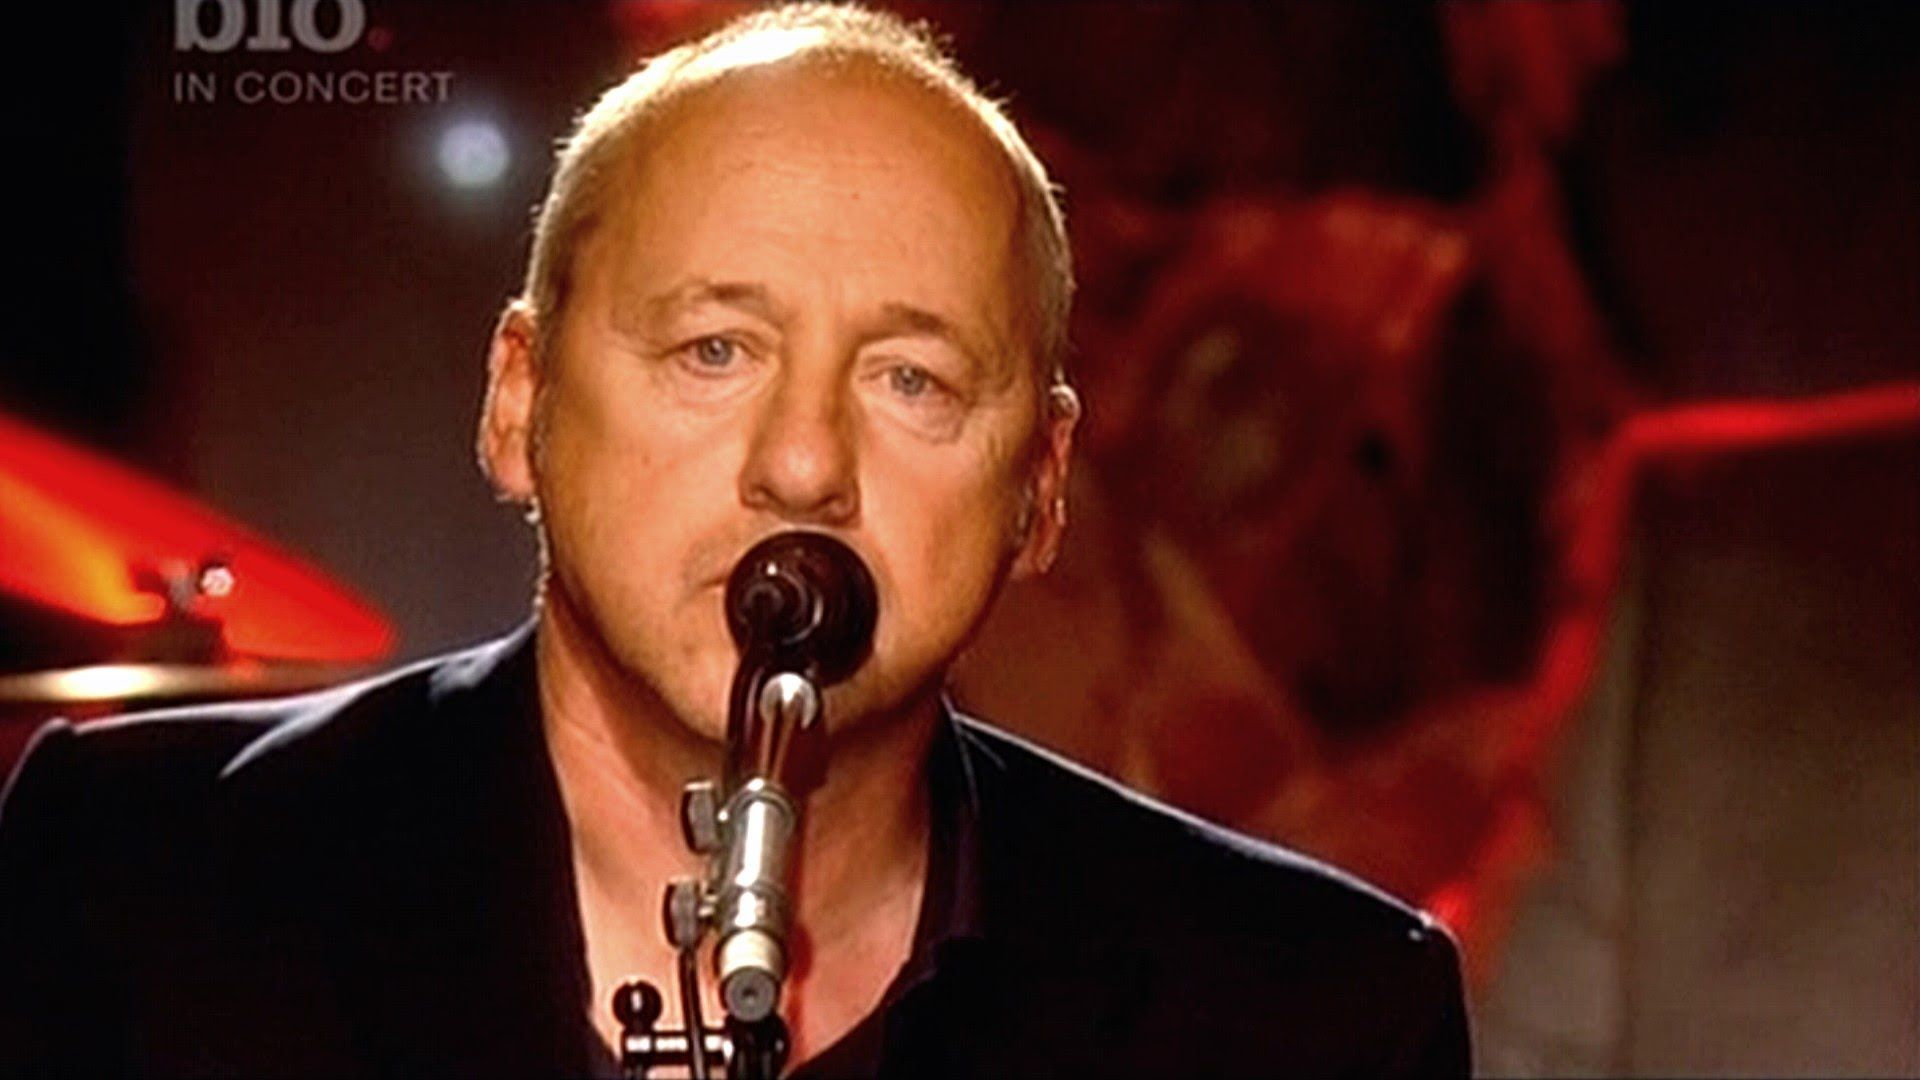 Resultado de imagem para Mark Knopfler - Sultans Of Swing (An Evening With Mark Knopfler, 2009)